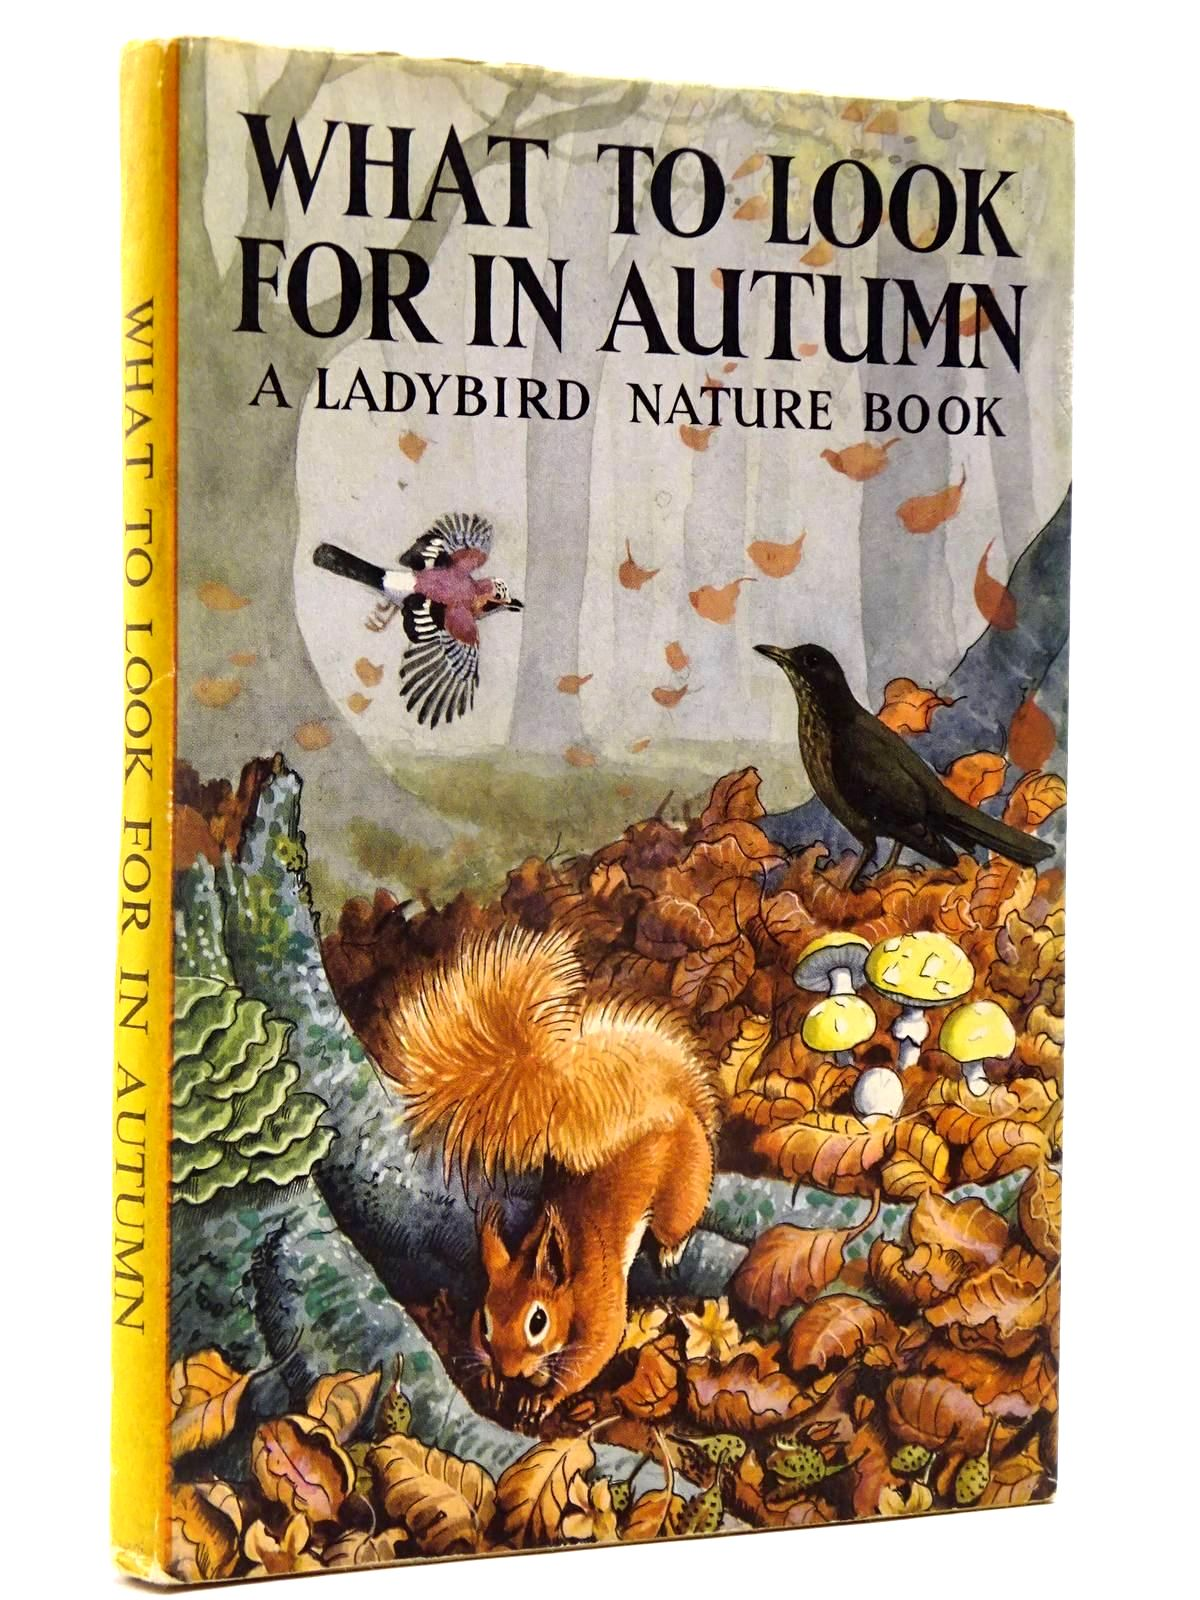 Photo of WHAT TO LOOK FOR IN AUTUMN written by Watson, E.L. Grant illustrated by Tunnicliffe, C.F. published by Wills & Hepworth Ltd. (STOCK CODE: 2130395)  for sale by Stella & Rose's Books